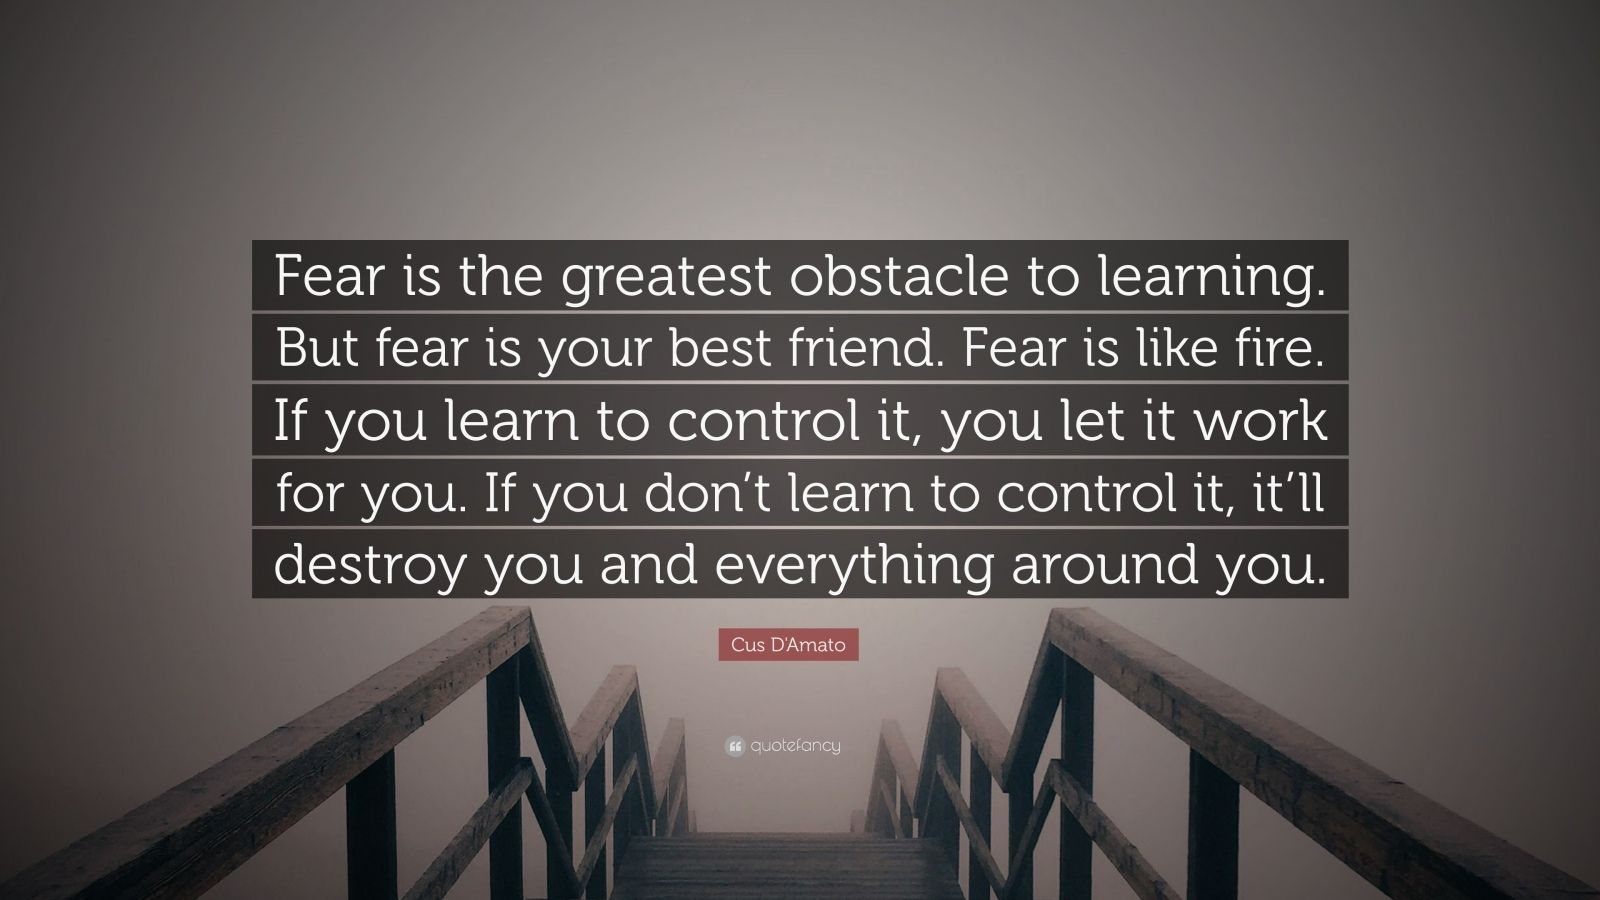 """Cus D'Amato Quote: """"Fear is the greatest obstacle to learning. But fear is your best friend. Fear is like fire. If you learn to control it, you let it work for you. If you don't learn to control it, it'll destroy you and everything around you."""""""